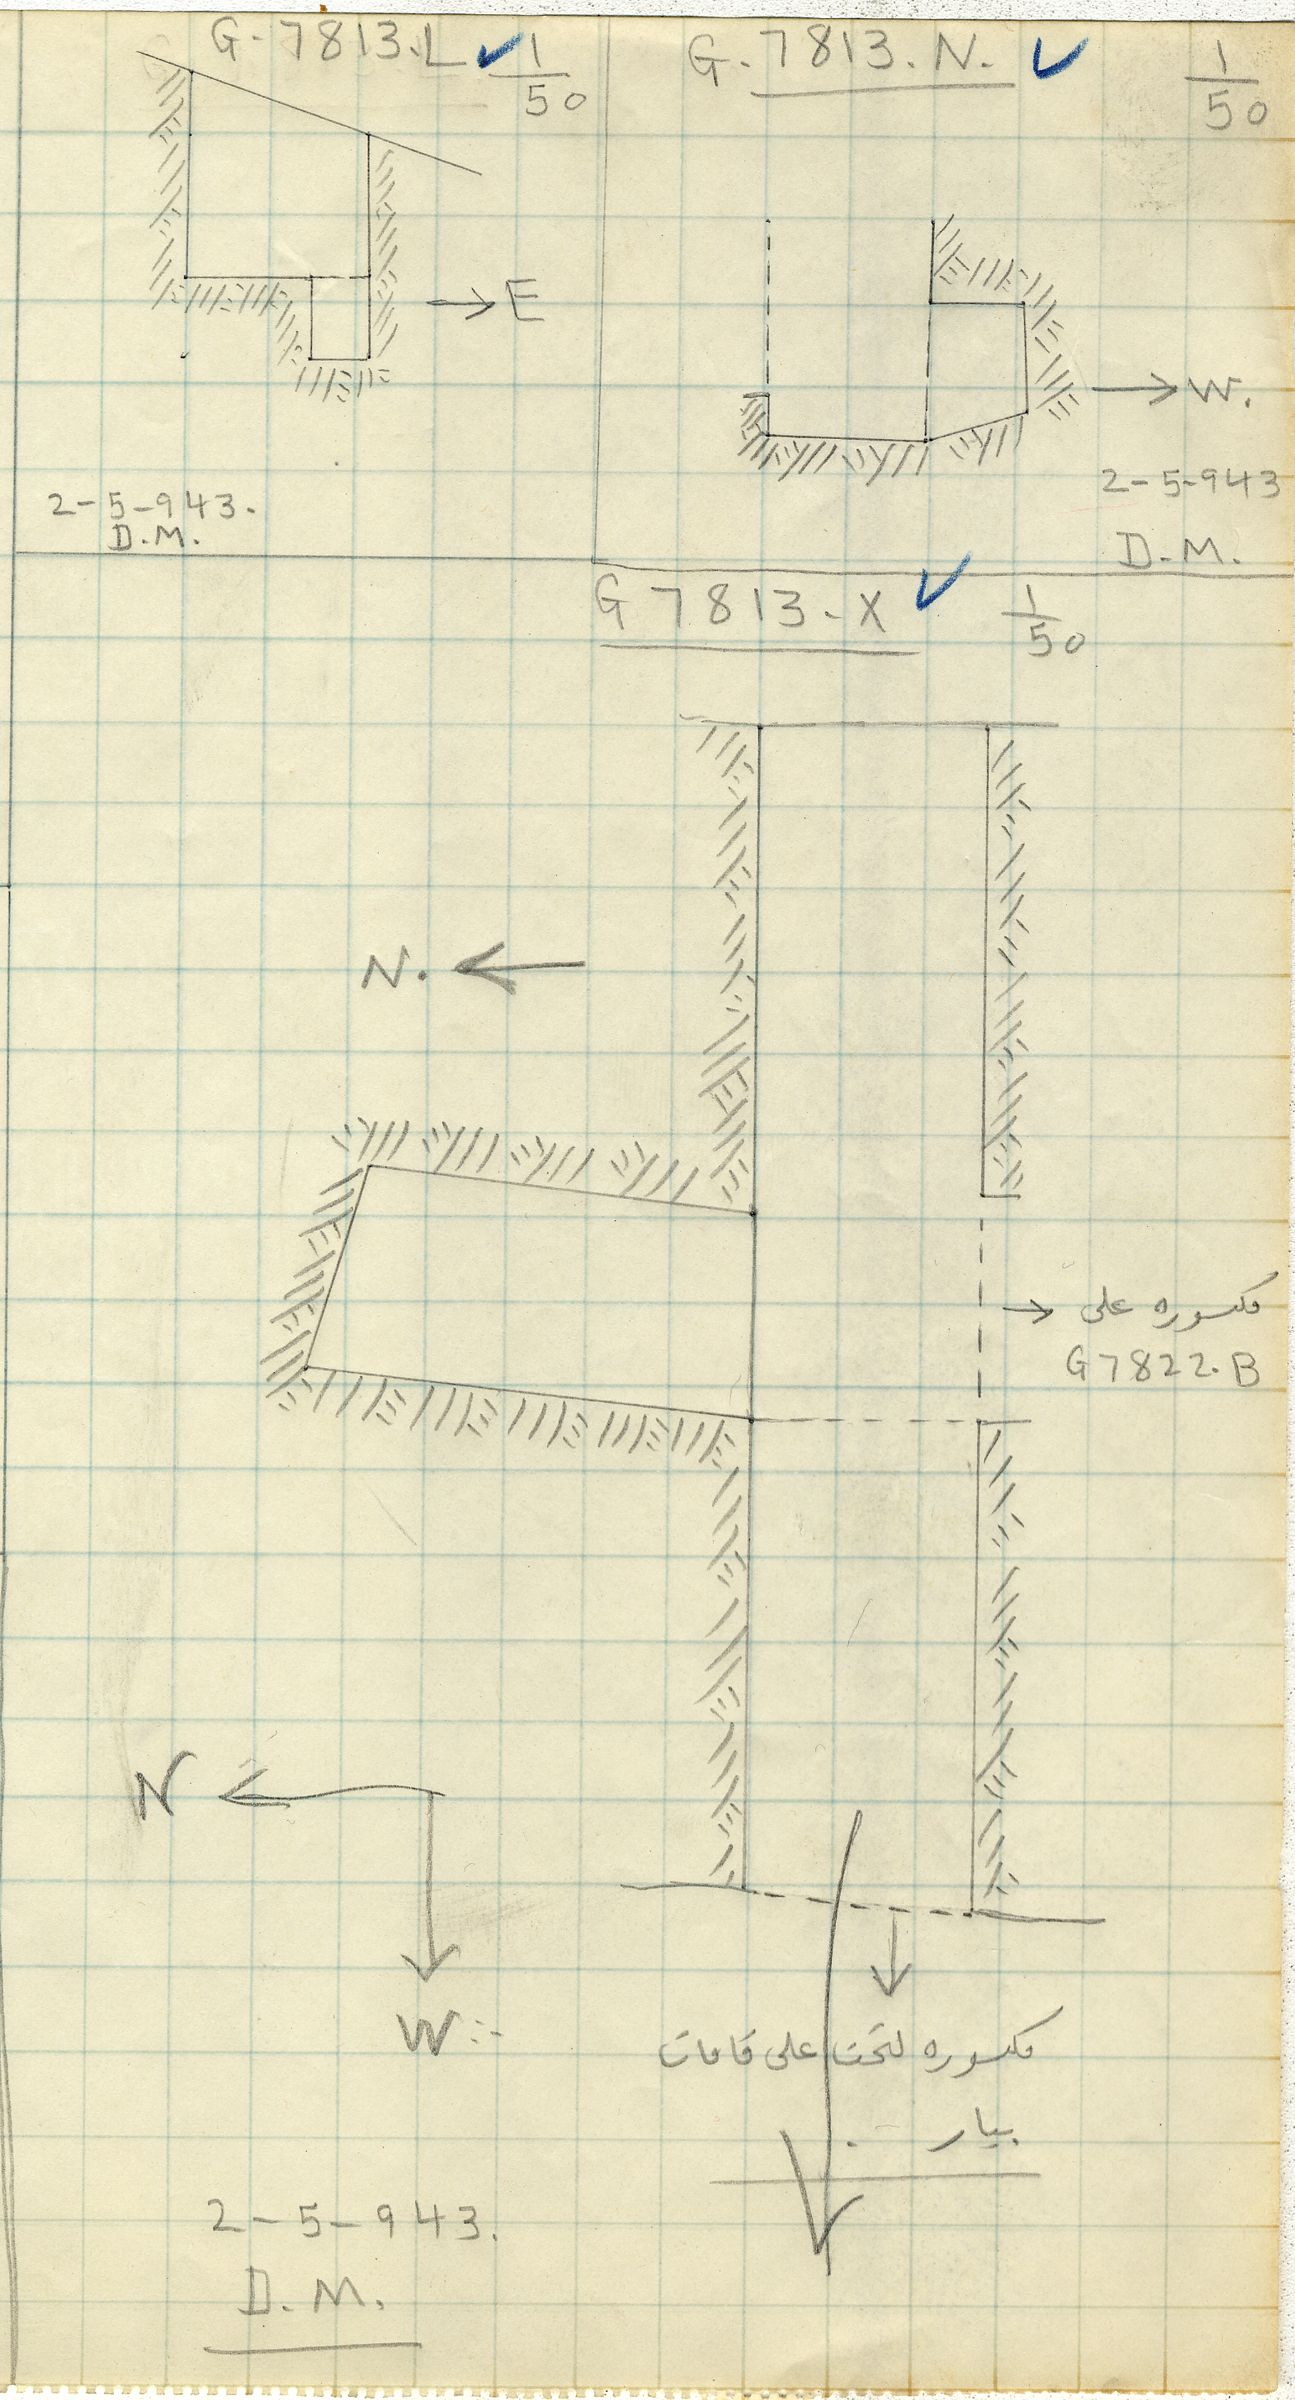 Maps and plans: G 7813, Shaft L, N, X